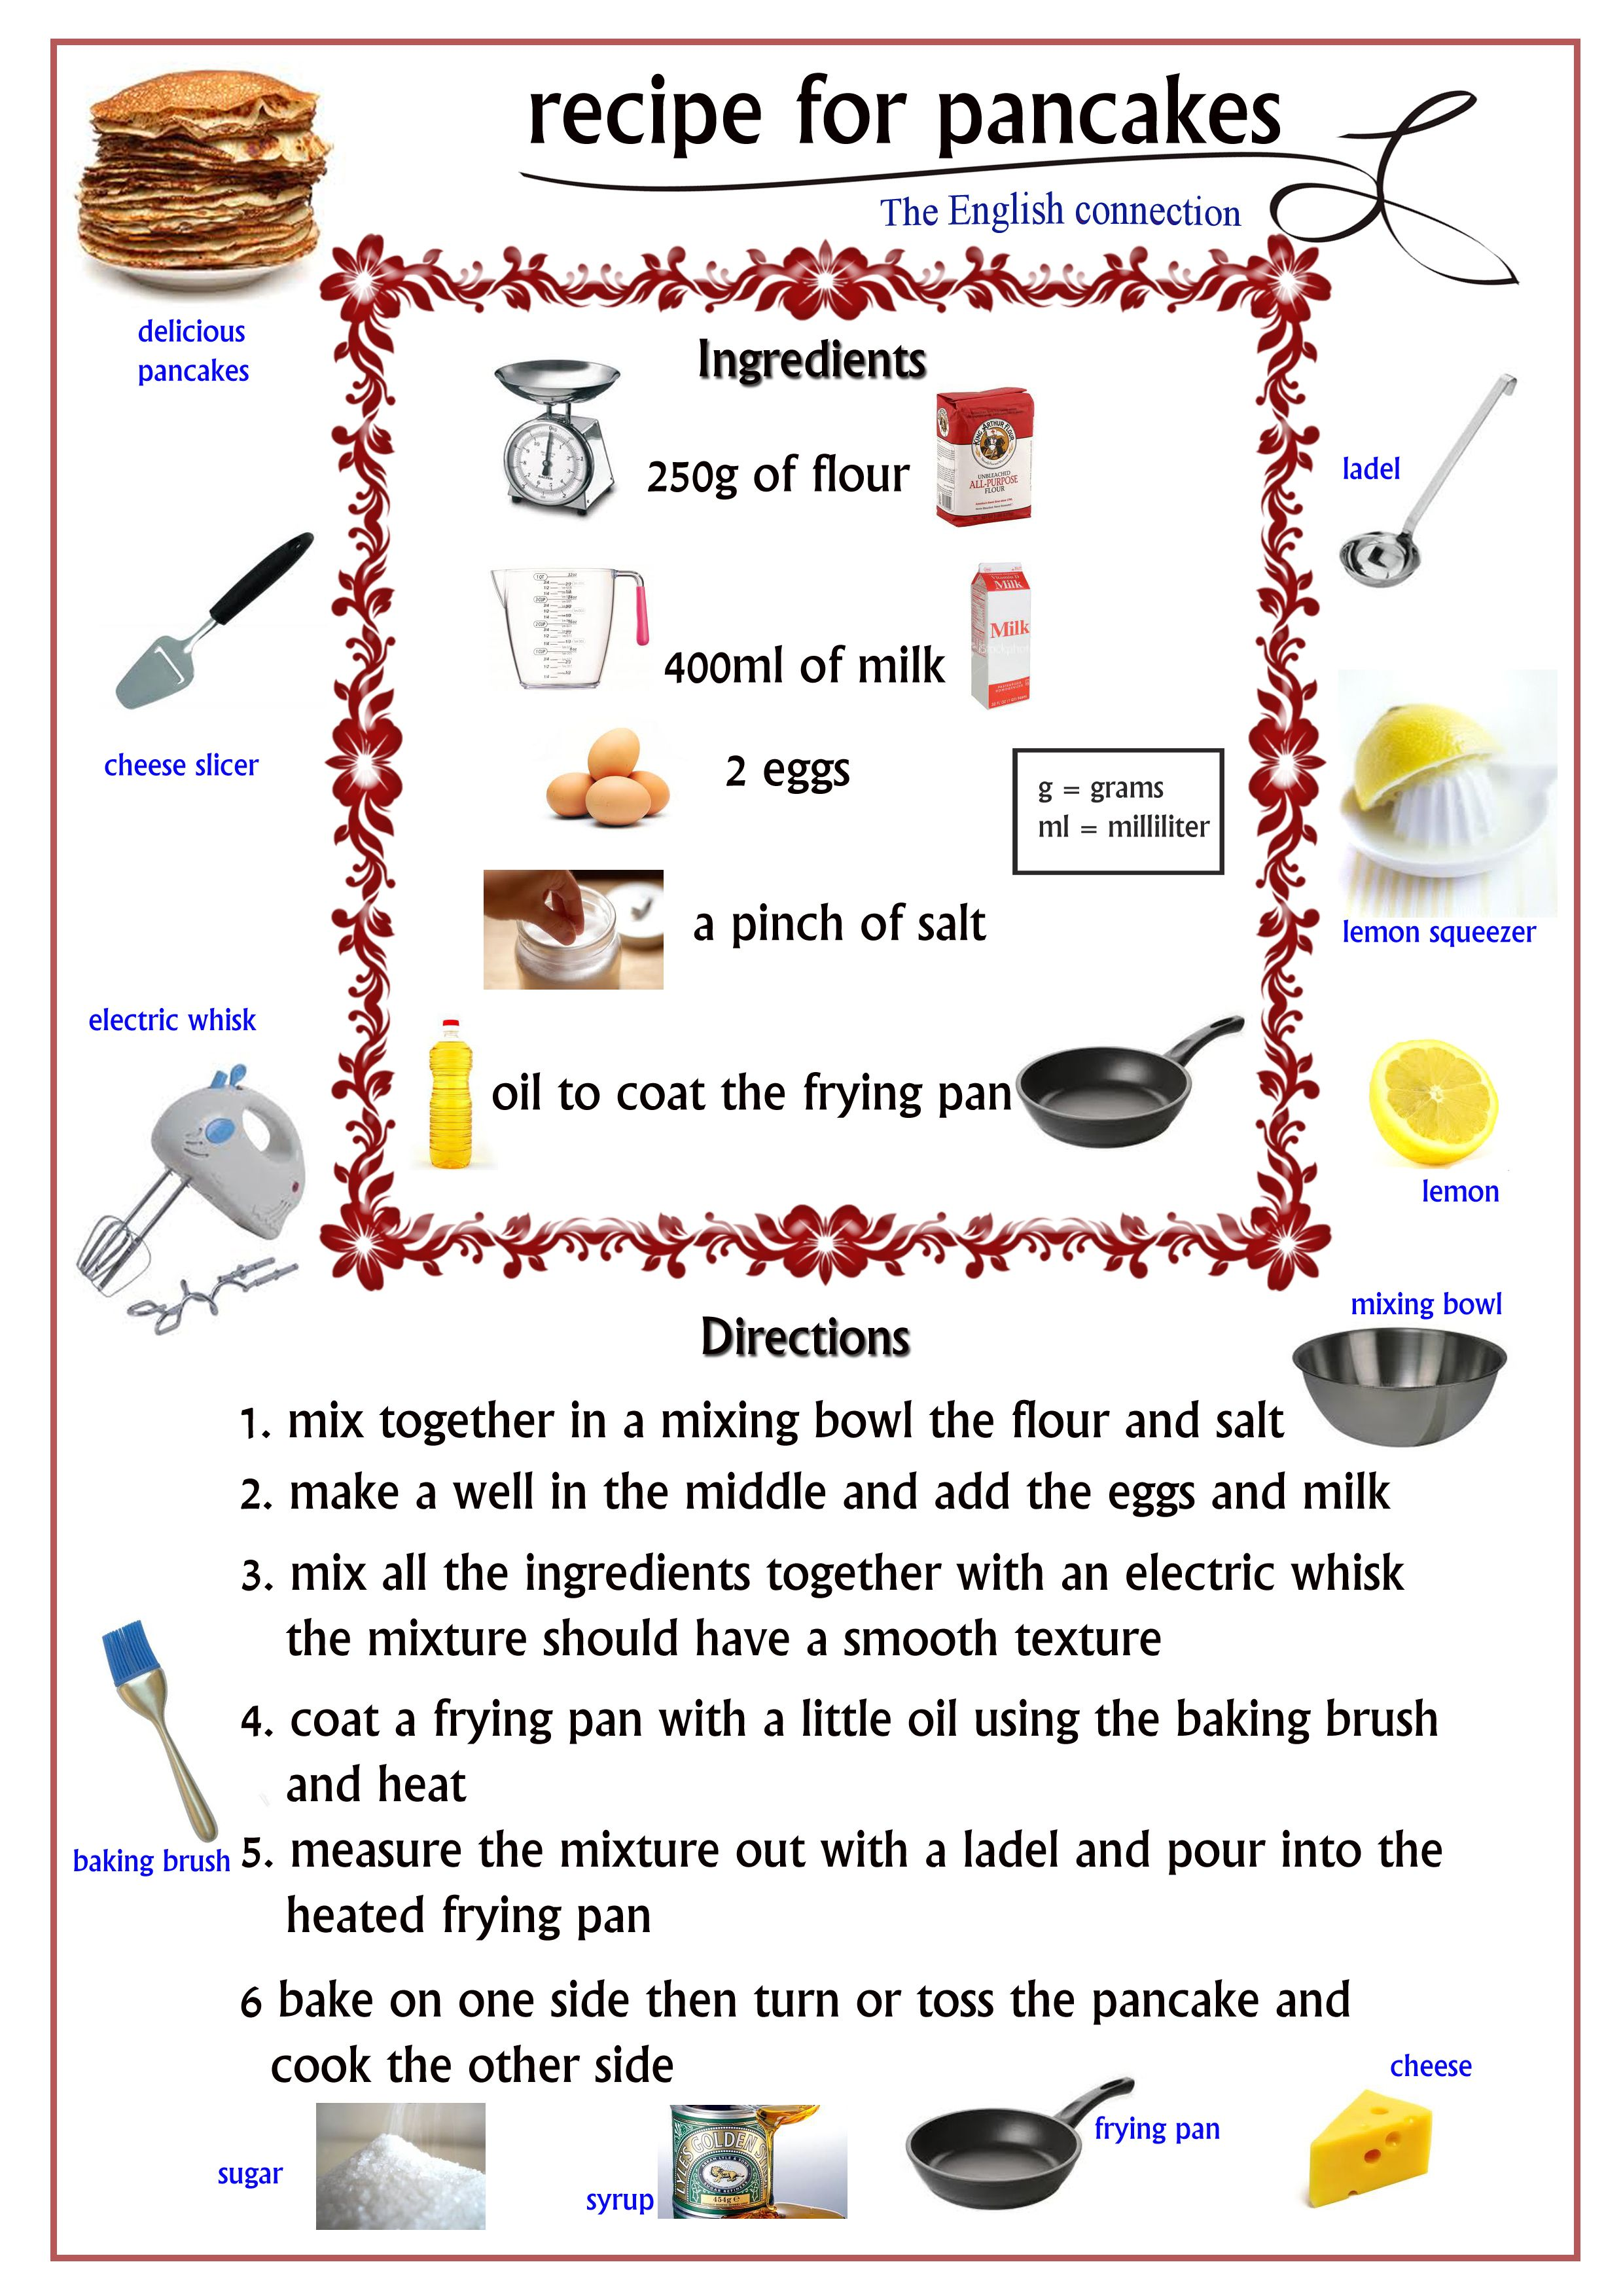 Recipe For Making Pancakes With Pictures Amp Measurements Easy To Read And Understand And Even